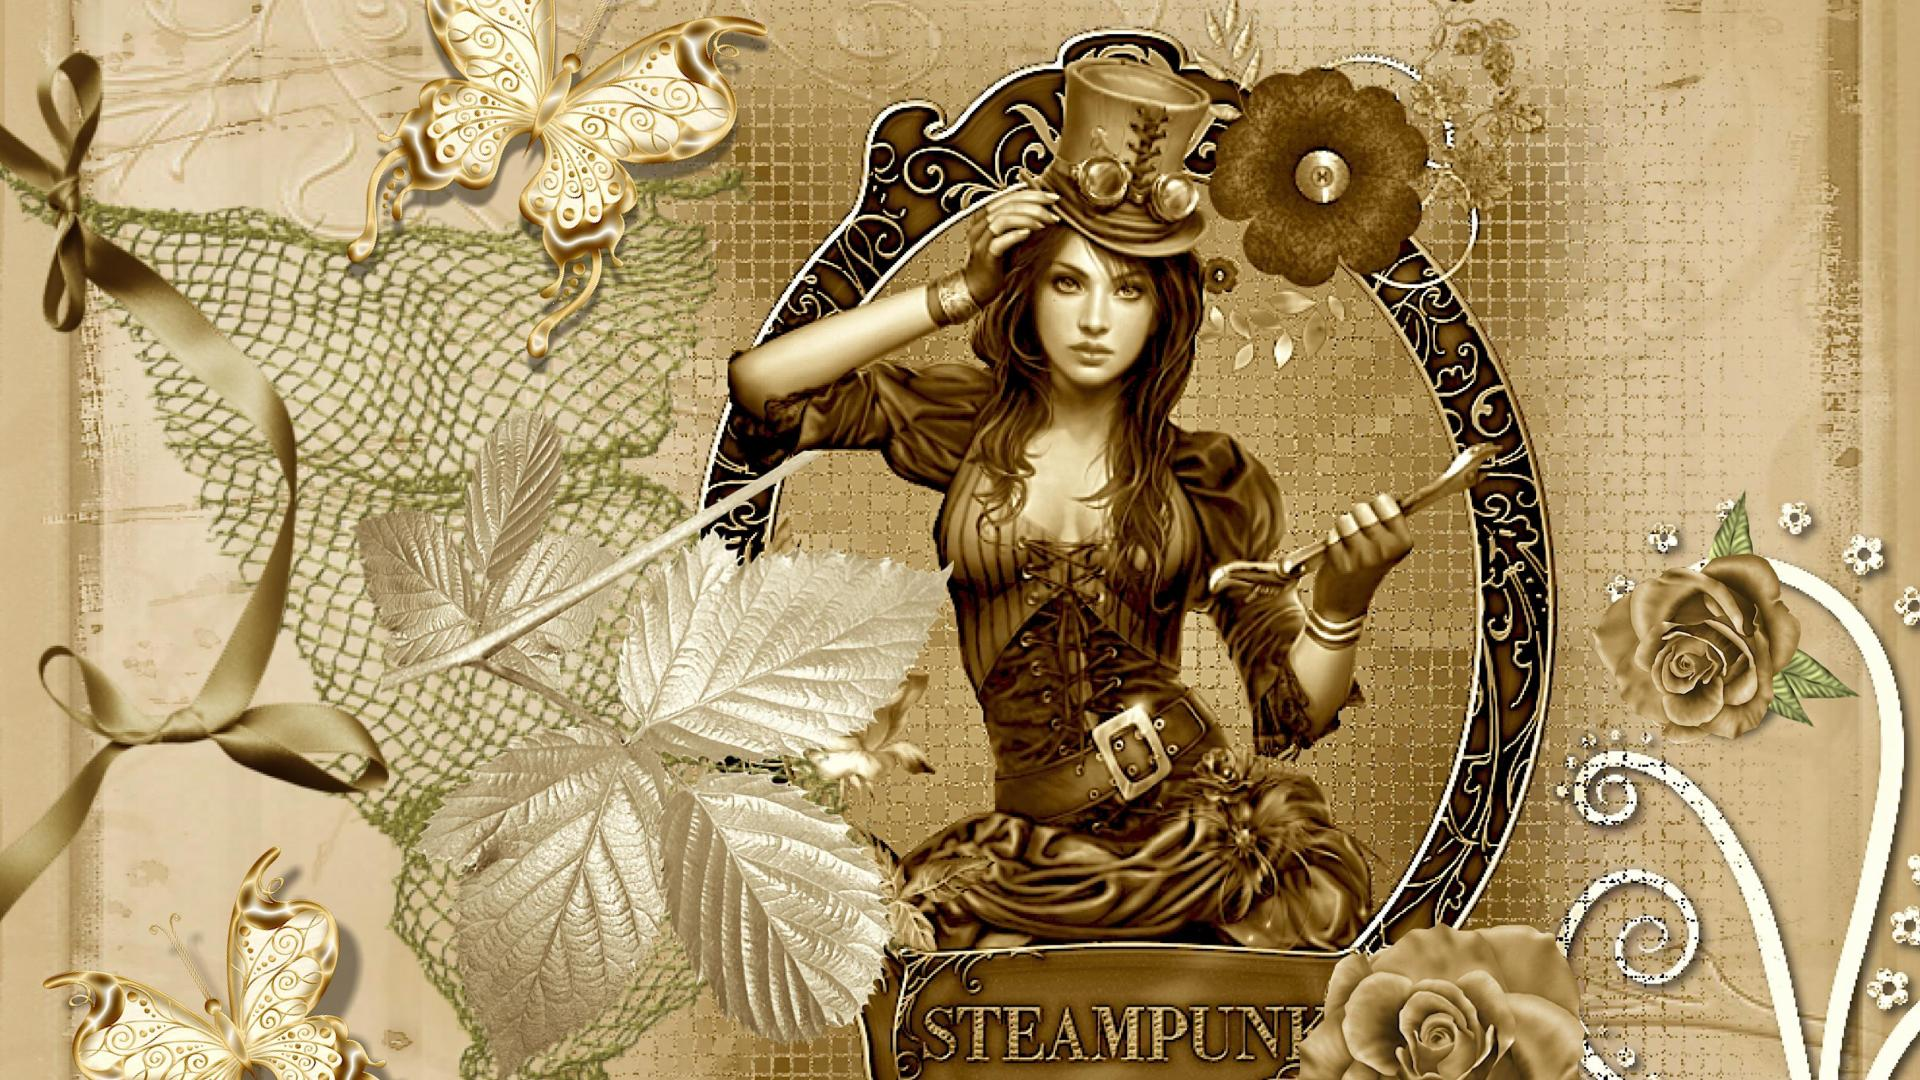 Steampunk girl   128496   High Quality and Resolution Wallpapers on 1920x1080